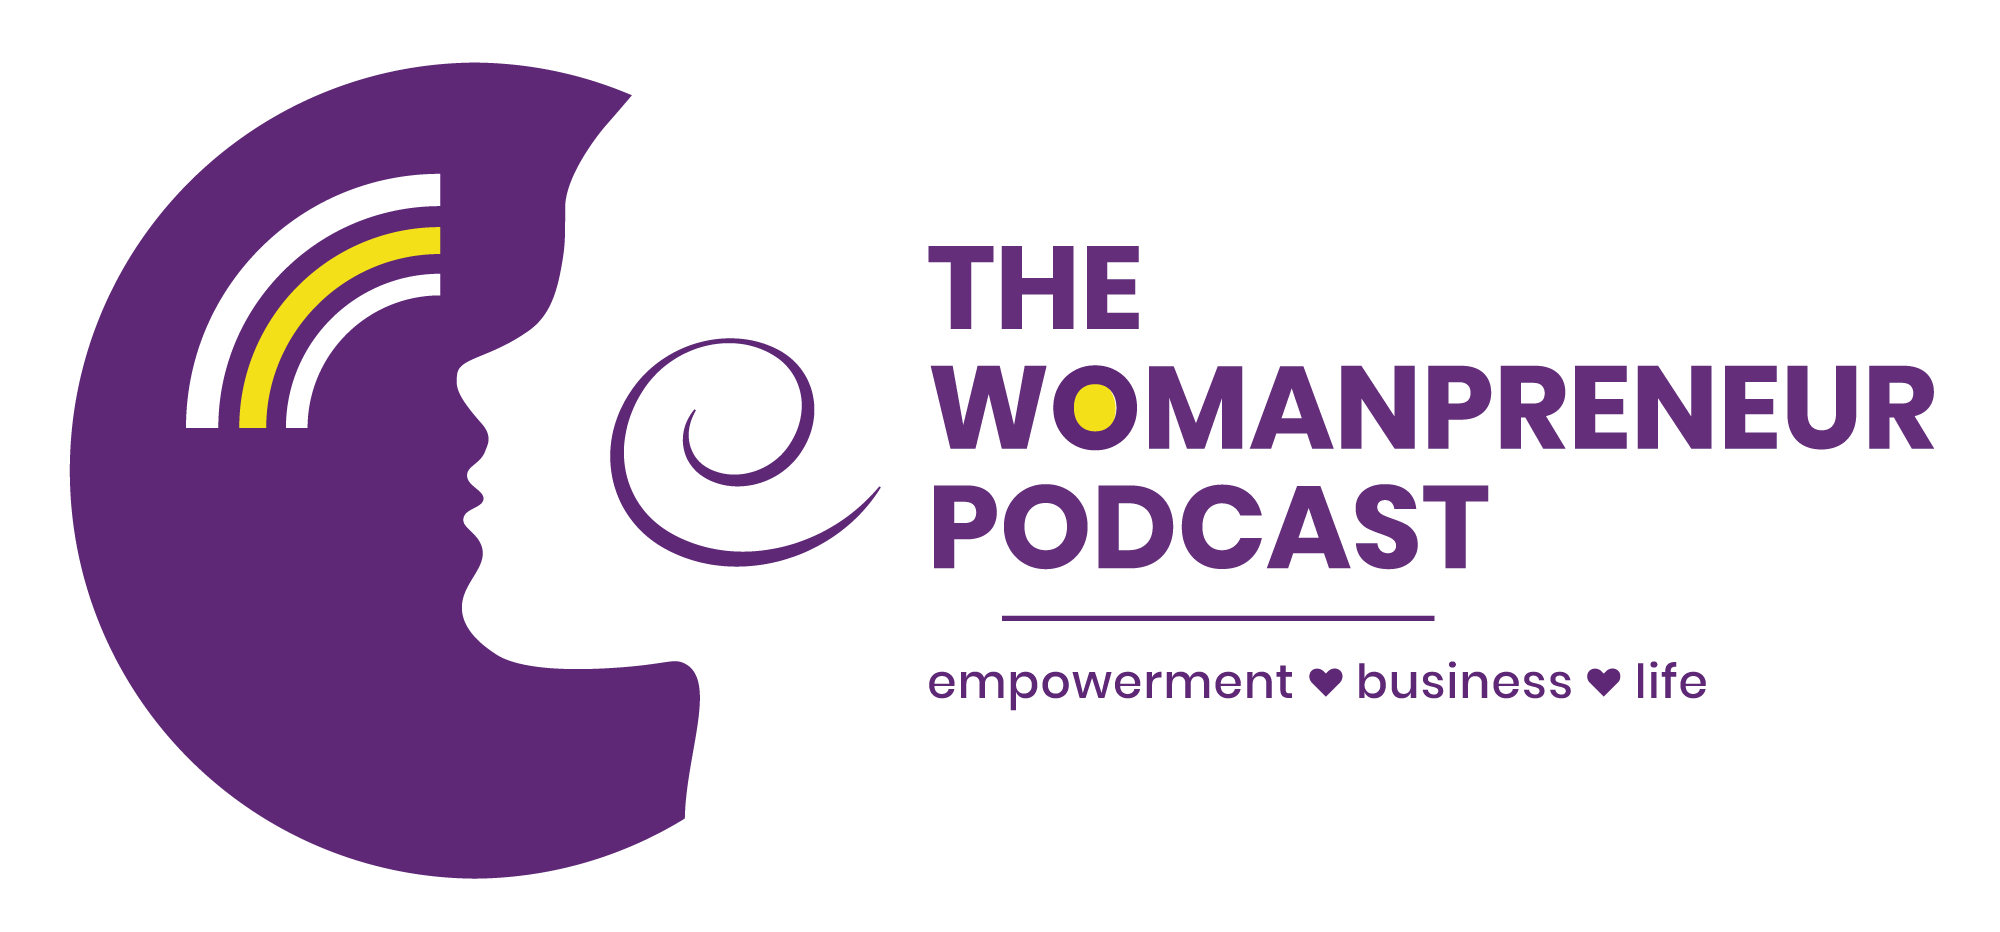 TheWomanpreneurPodcast.png